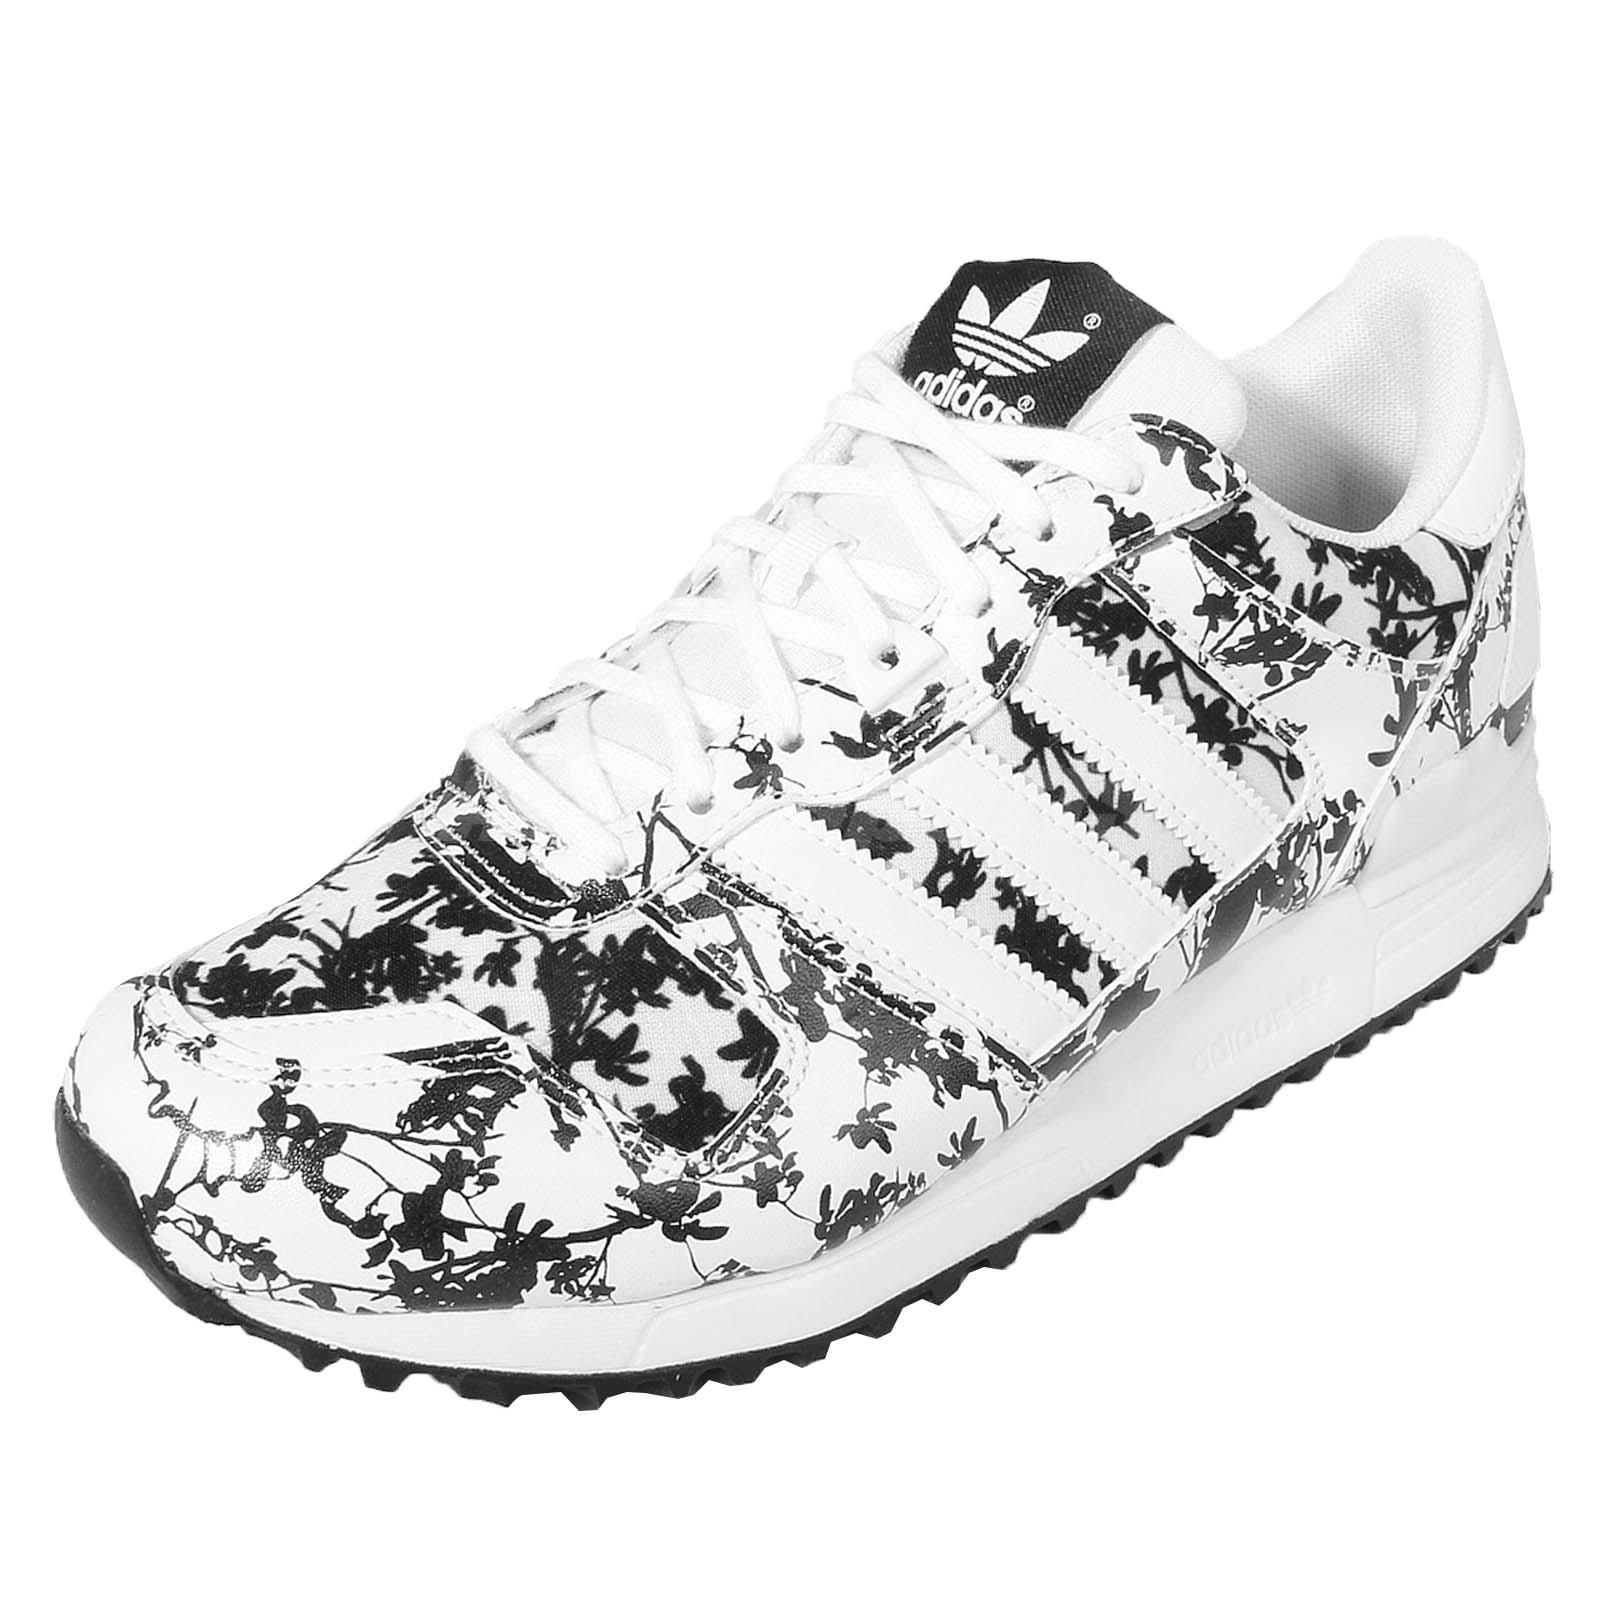 adidas Originals ZX 700 W Black White Palm Tree Womens Casual Shoes AQ3143